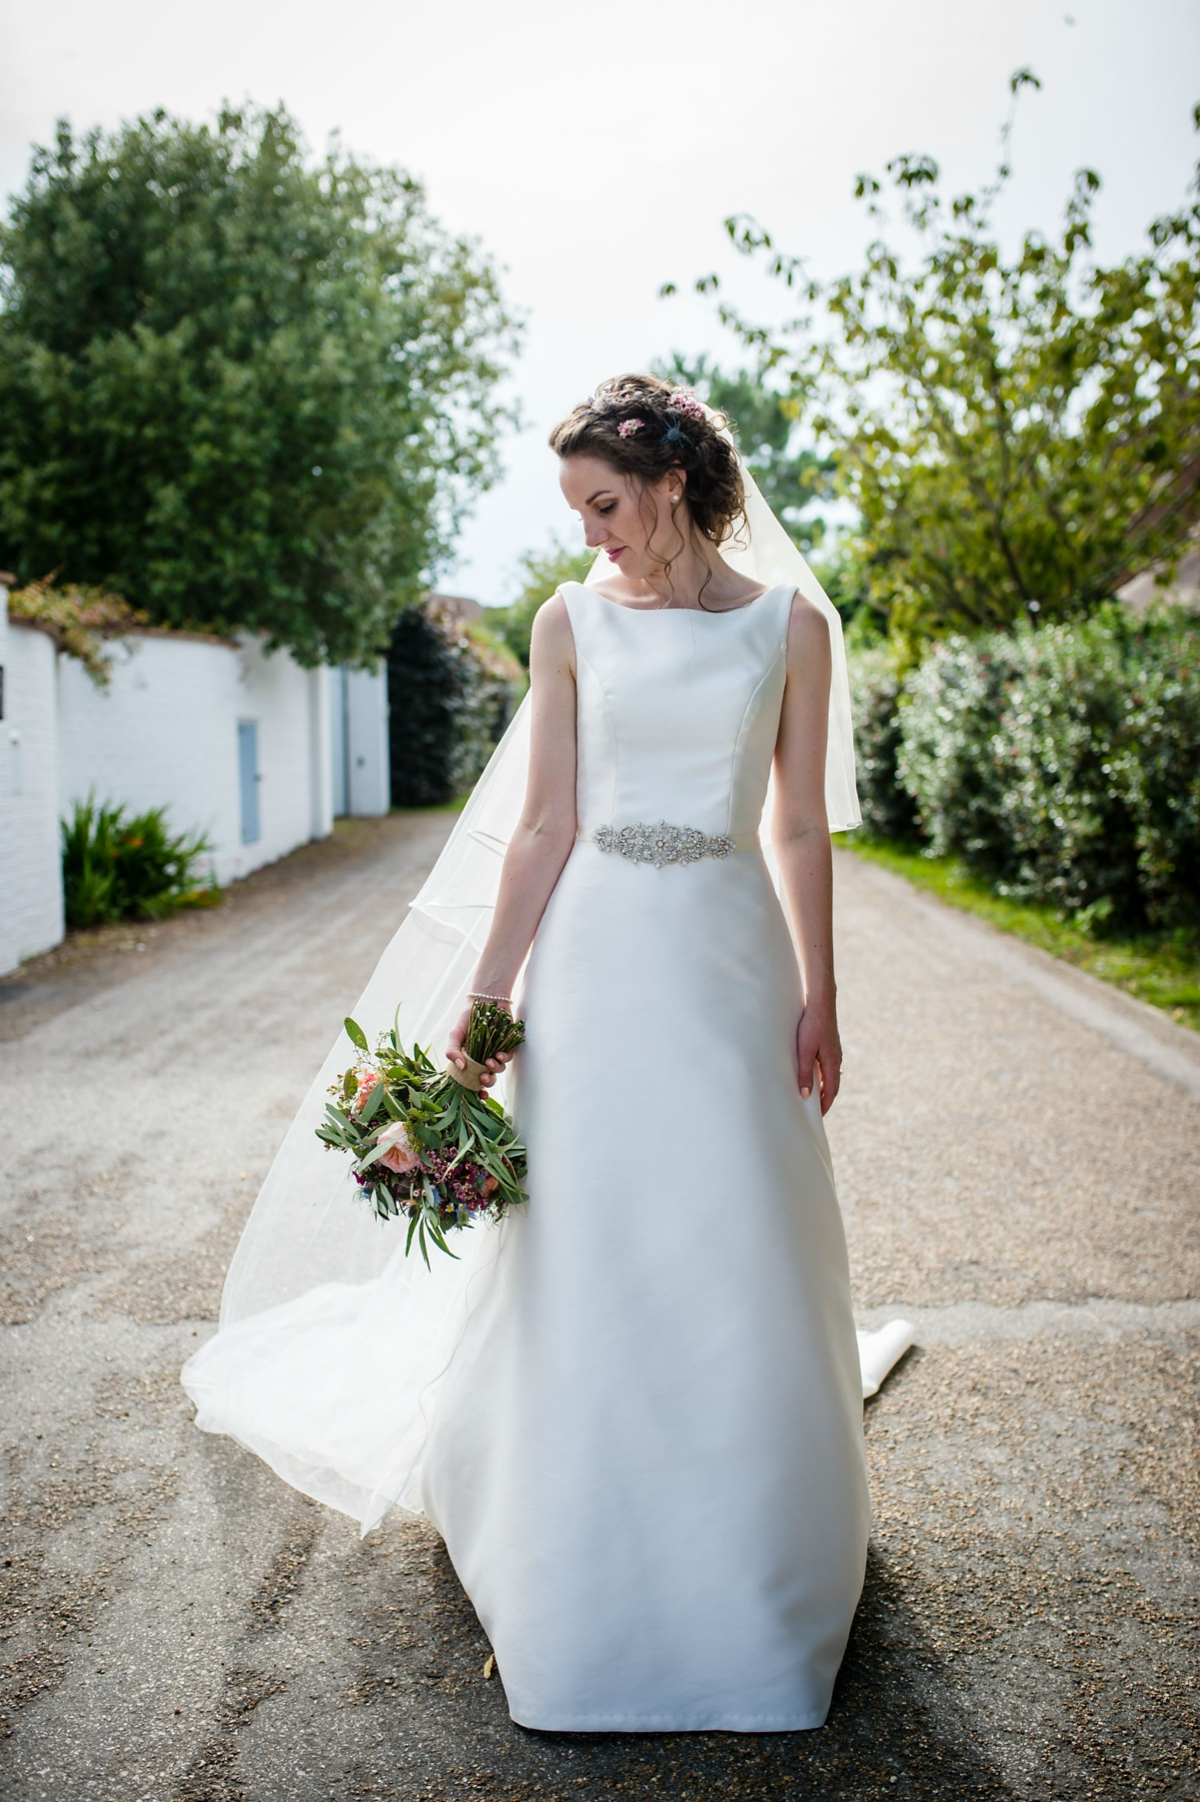 74dd0a76eaf Sottero and Midgely bride - A Sottero   Midgely Bride s Lovely Handmade  Wedding by the Sea. ""